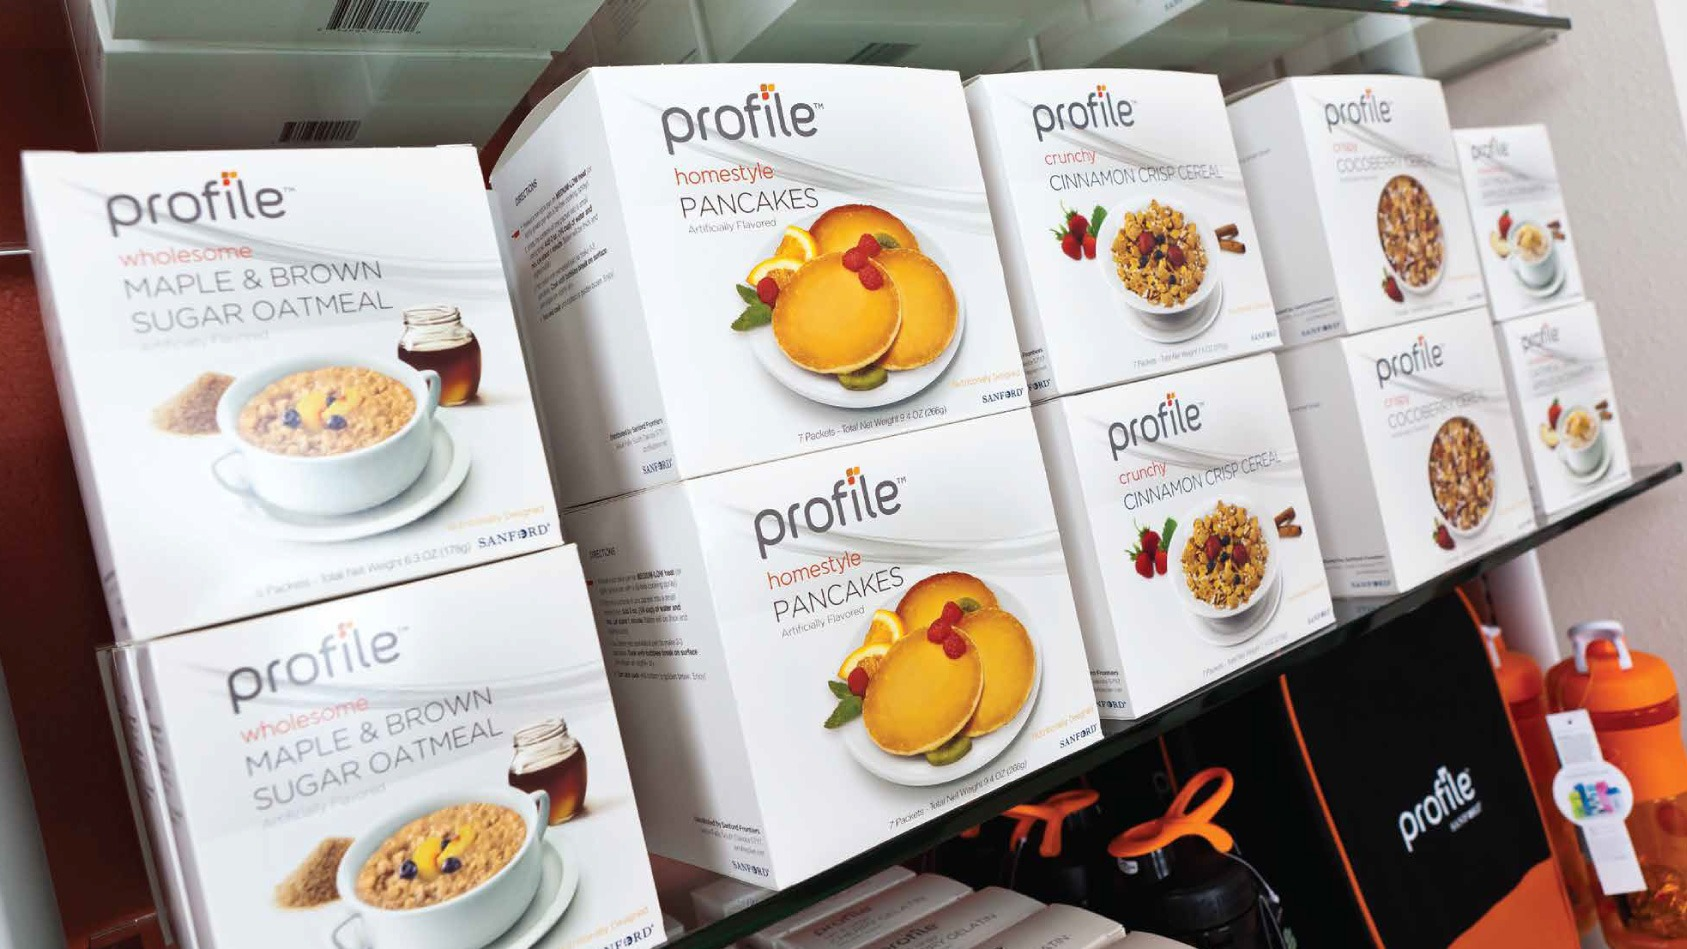 Profile Food Products, including Maple Brown Sugar Oatmeal, Pancakes, Cinnamon Crisp Cereal and more.